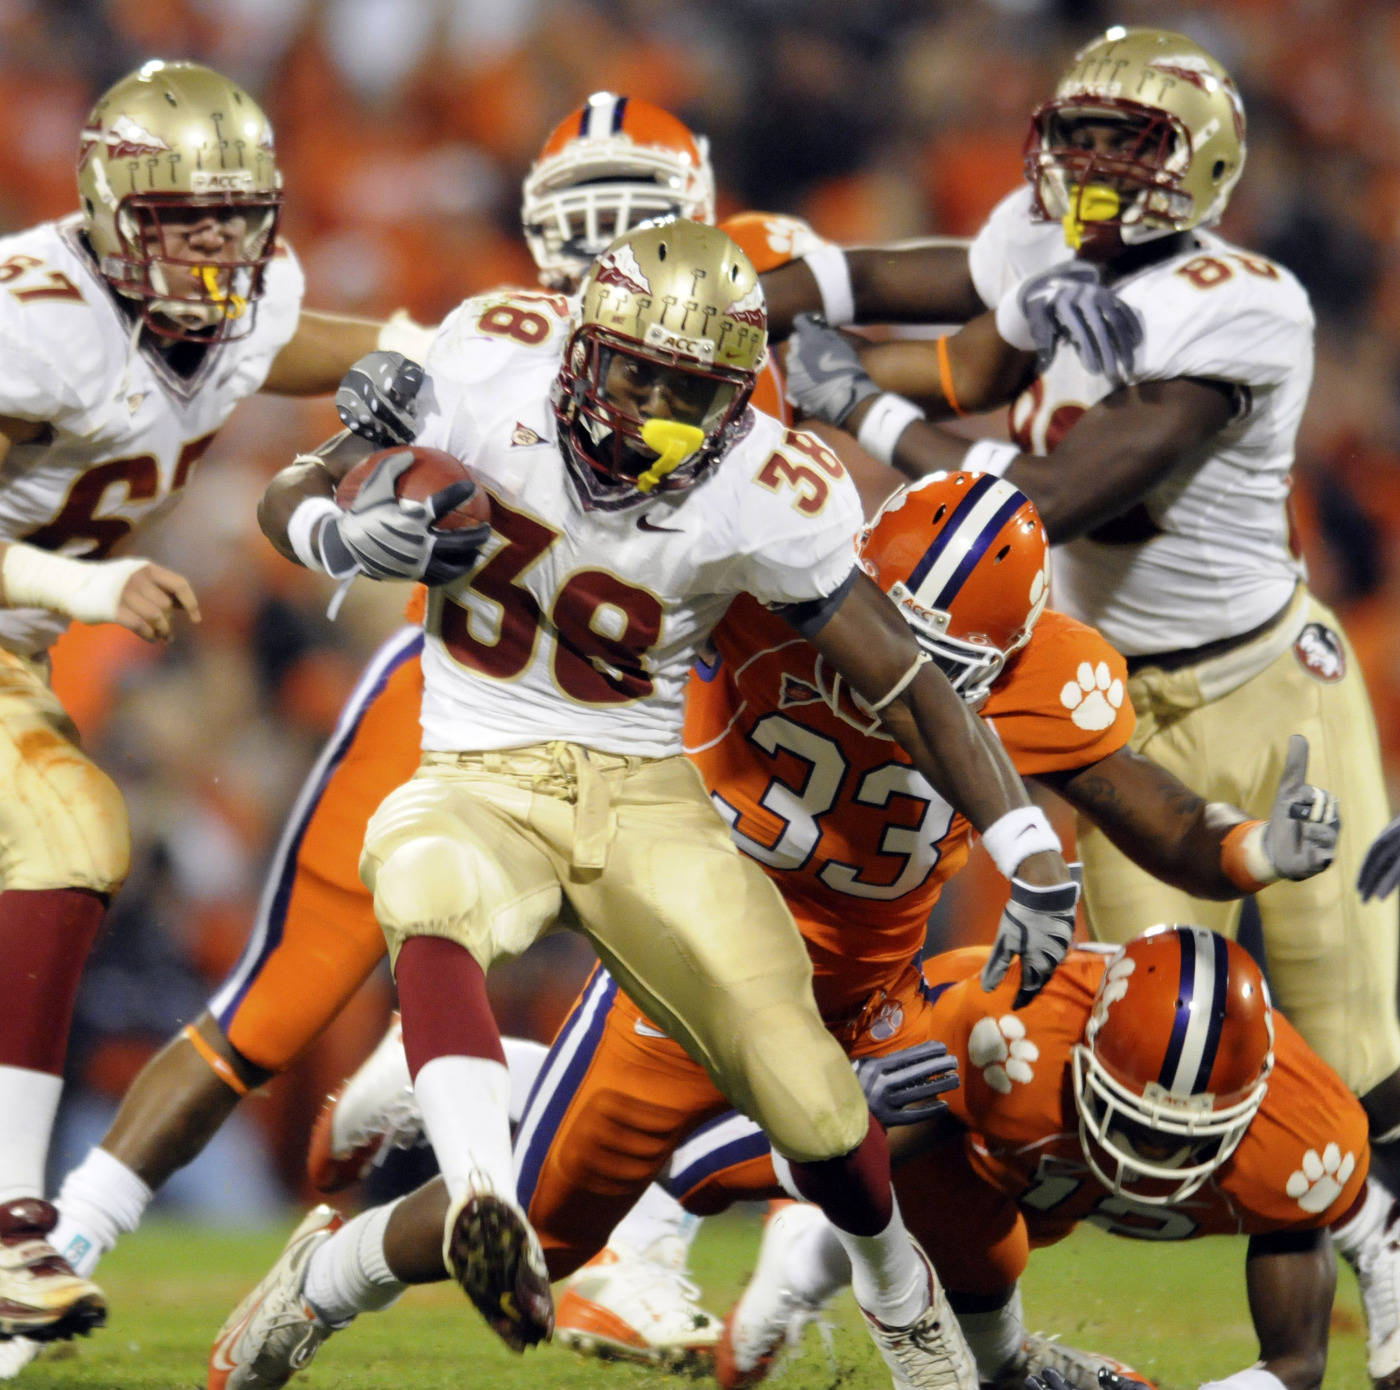 Florida State's Jermaine Thomas (38) breaks for a first down past Clemson's Kavell Conner (33) during the first half. (AP Photo/Richard Shiro)